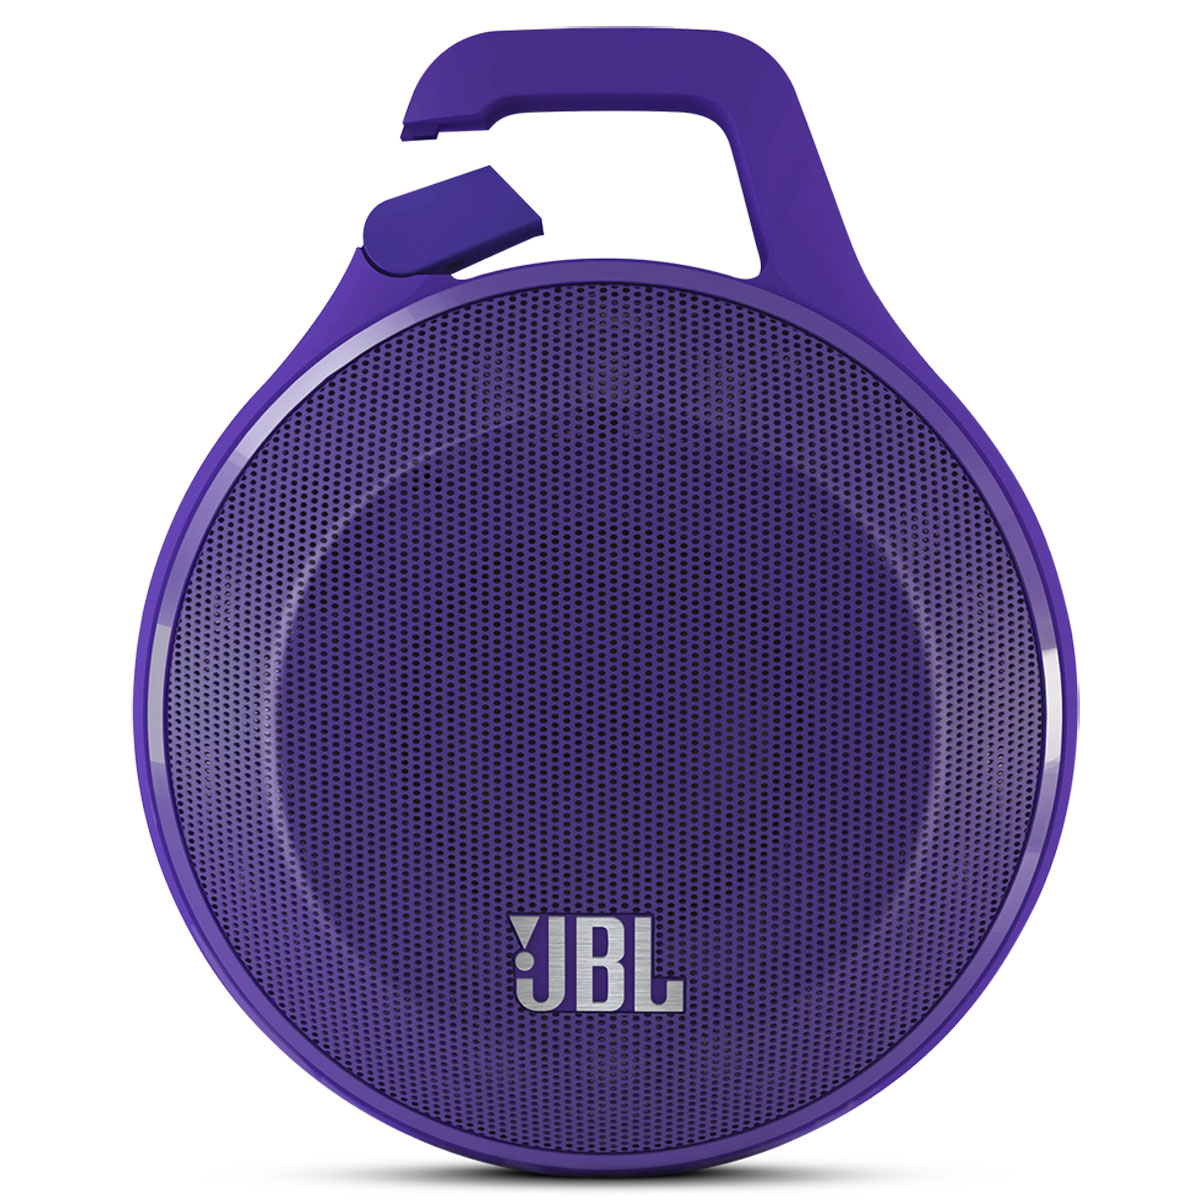 jbl clip violet dock enceinte bluetooth jbl sur. Black Bedroom Furniture Sets. Home Design Ideas